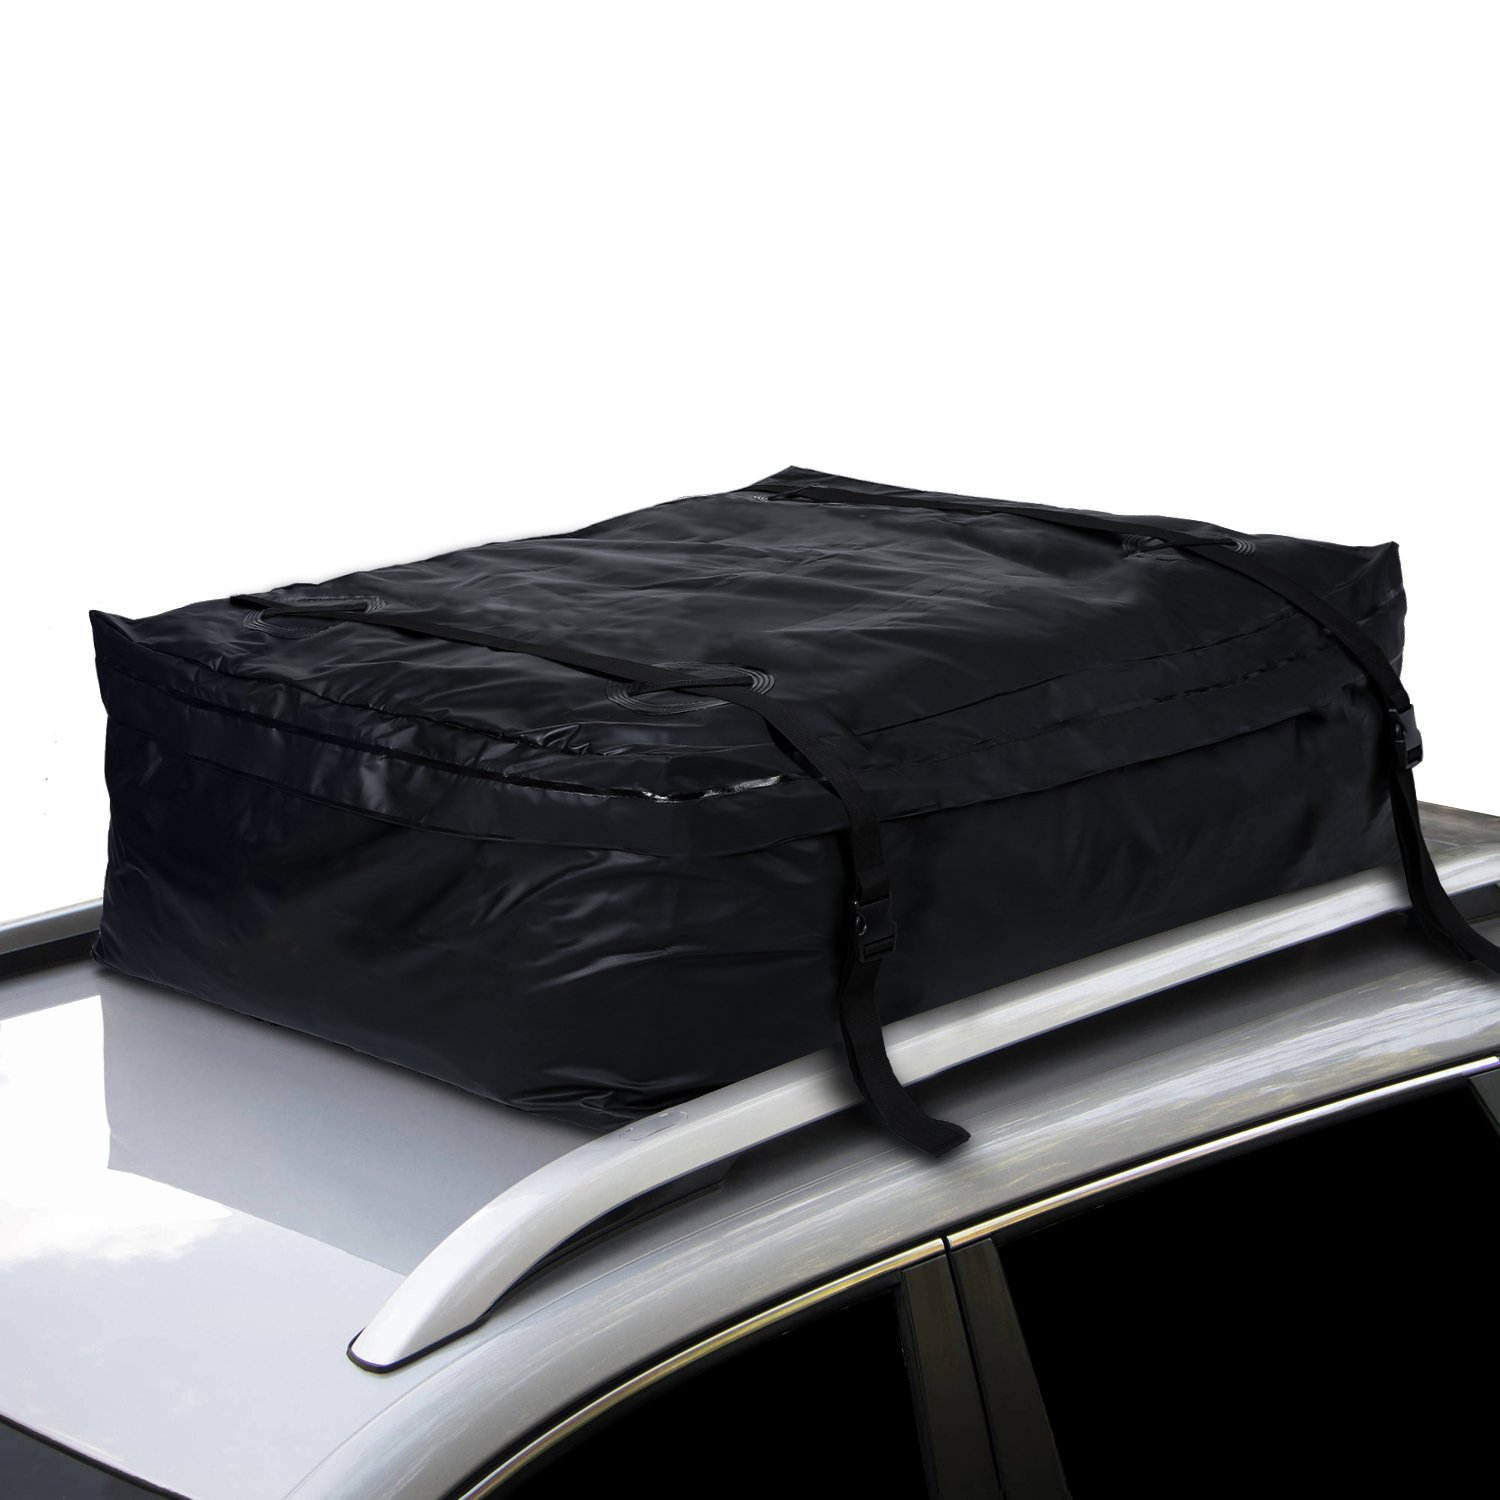 Benlet 19 Cubic Feet Car Roof Carrier, Waterproof Rooftop Soft Car Luggage Storage Bag for All Vehicles With Racks